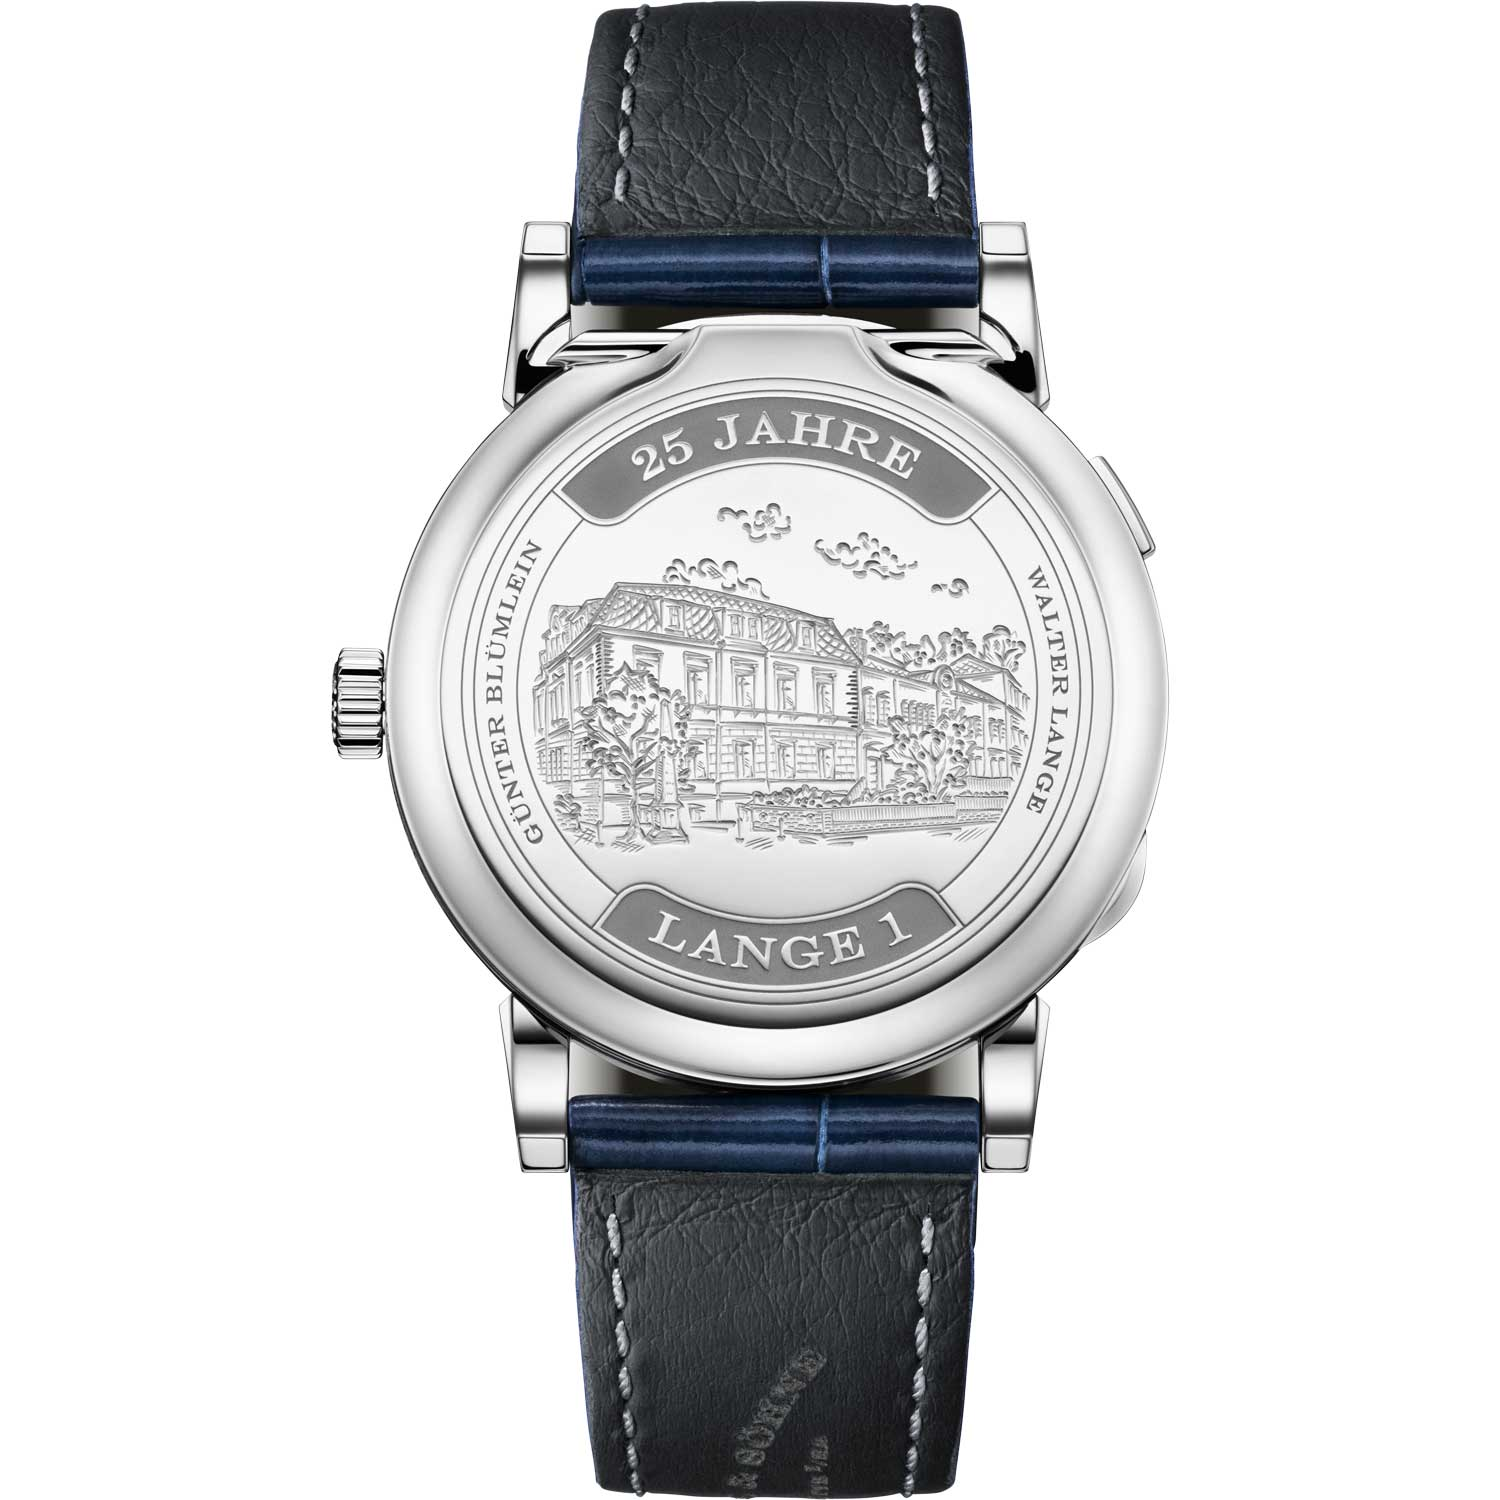 """The LANGE 1 """"25th Anniversary"""" had an engraved white-gold hinged cuvette which depicts the A. Lange & Söhne family domain that was inaugurated in 1873"""